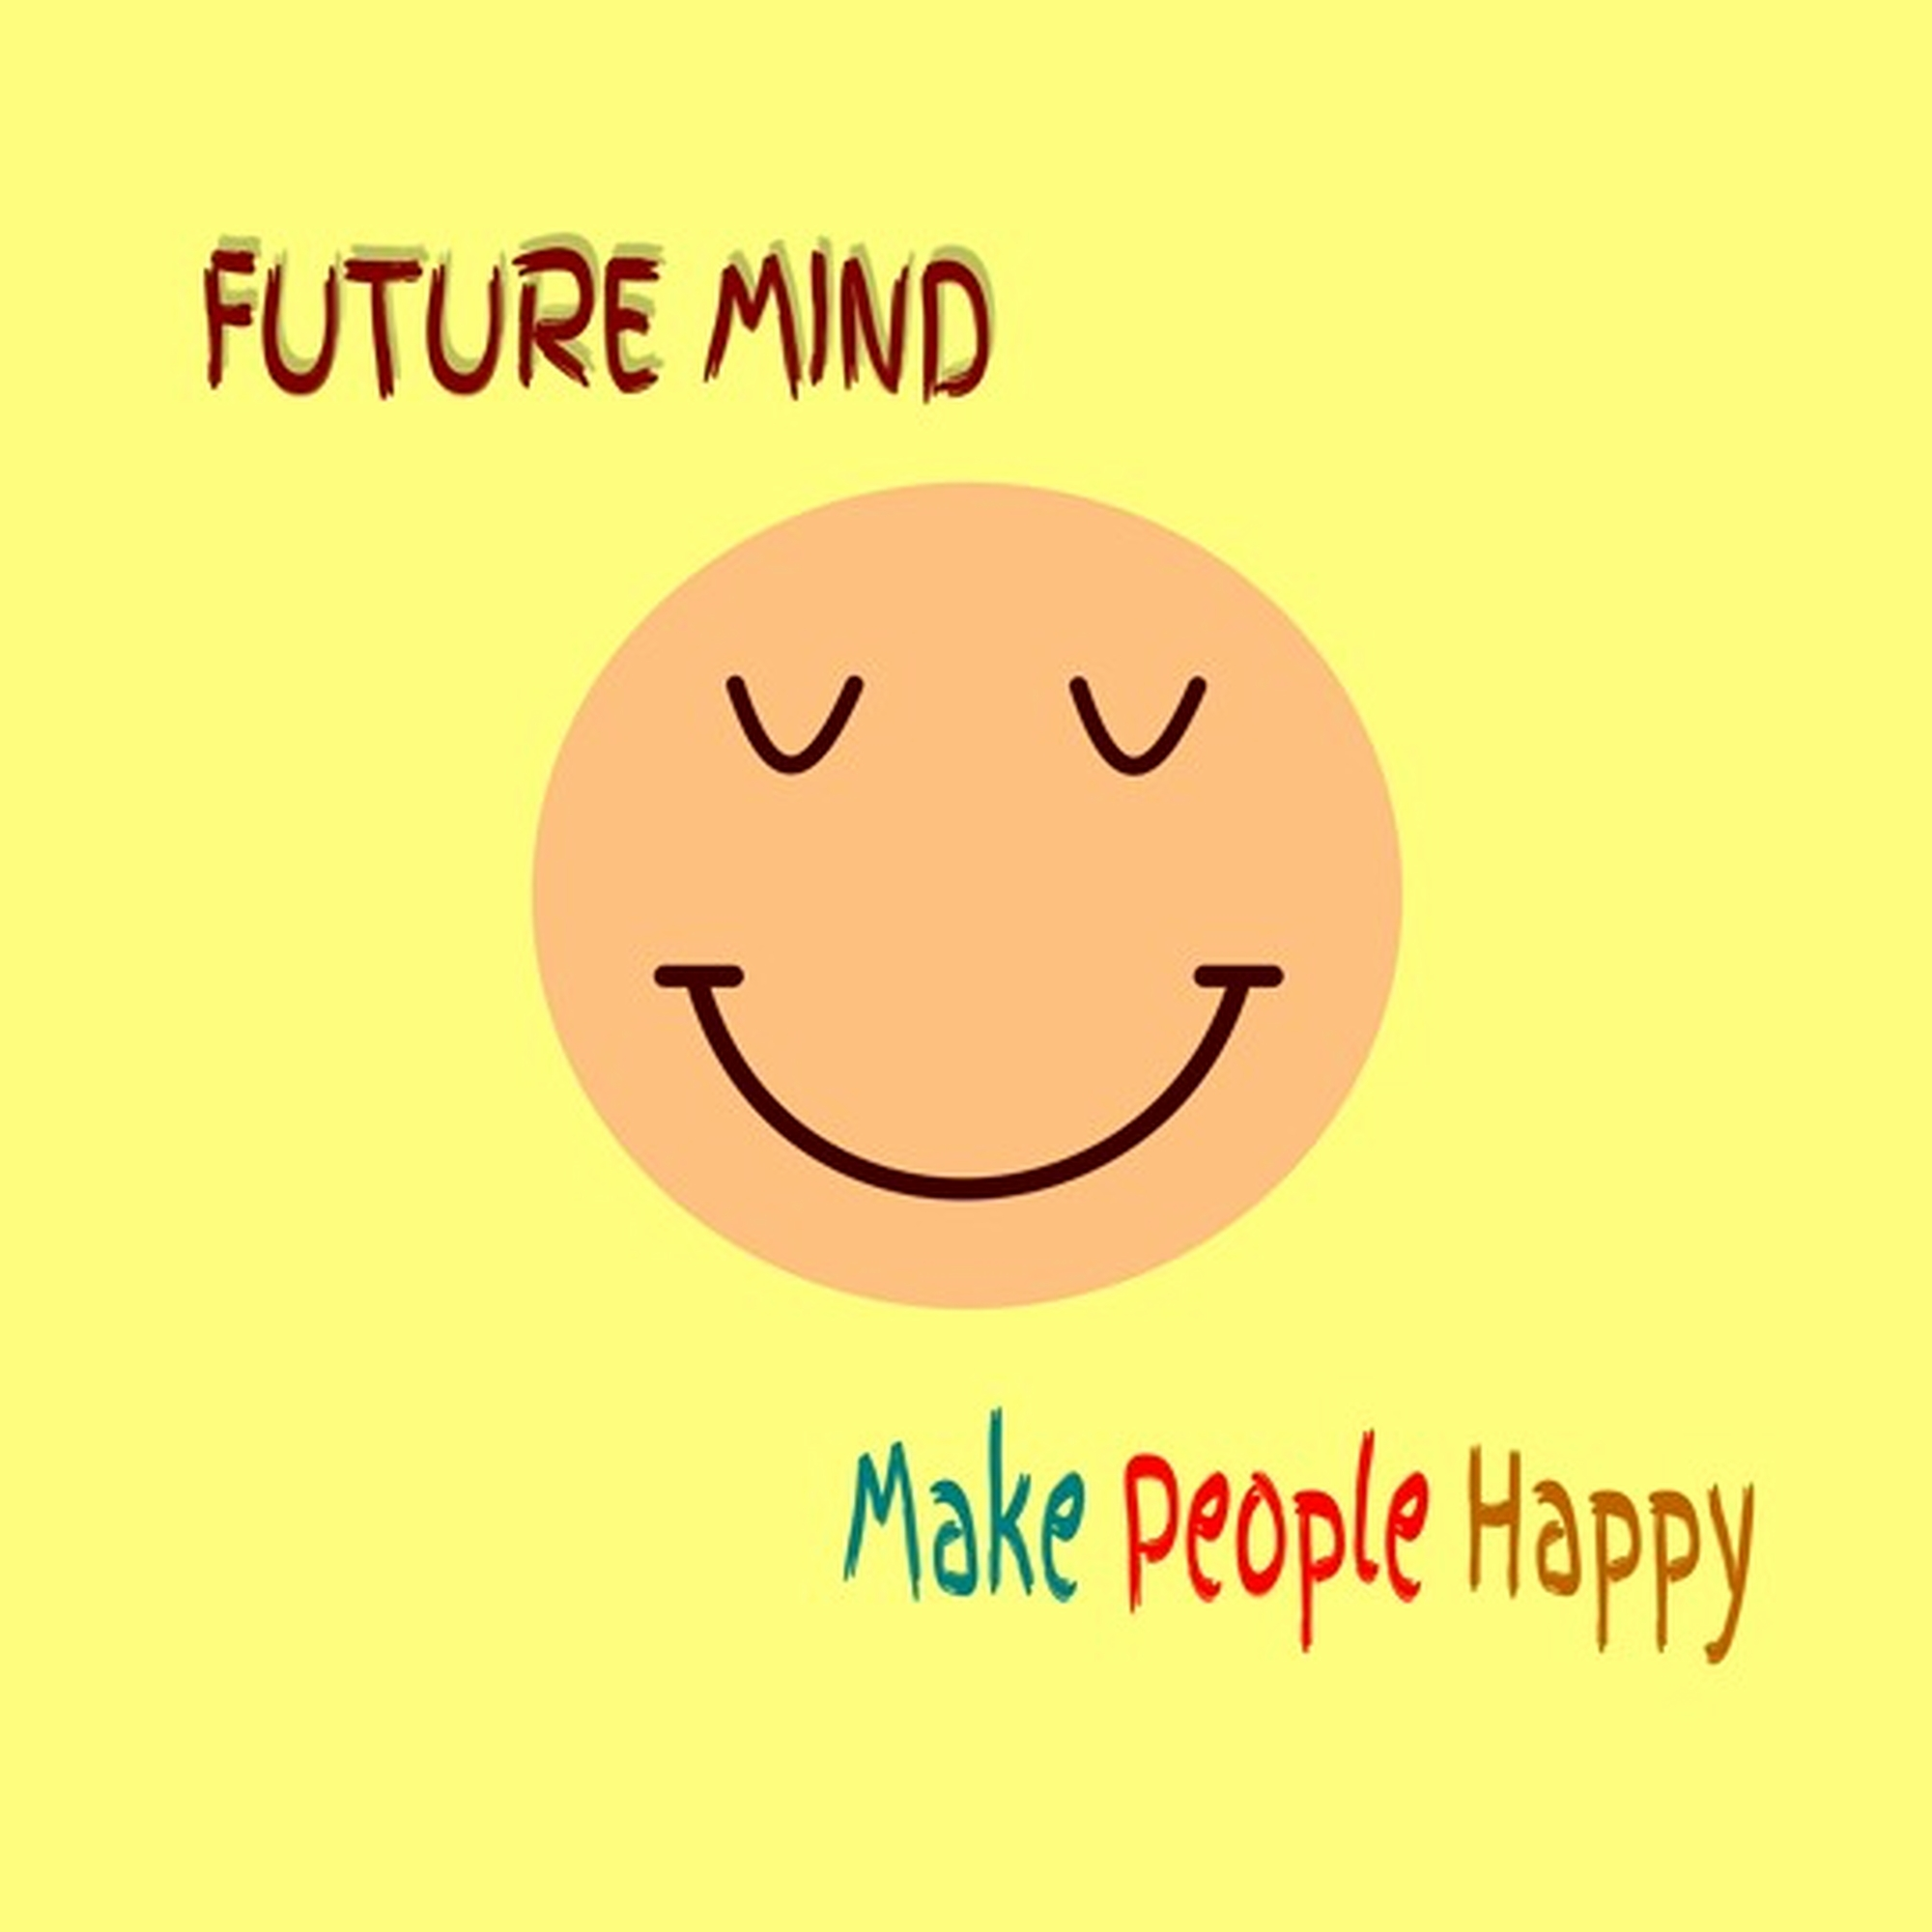 Future-Mind-Make-People-Happy